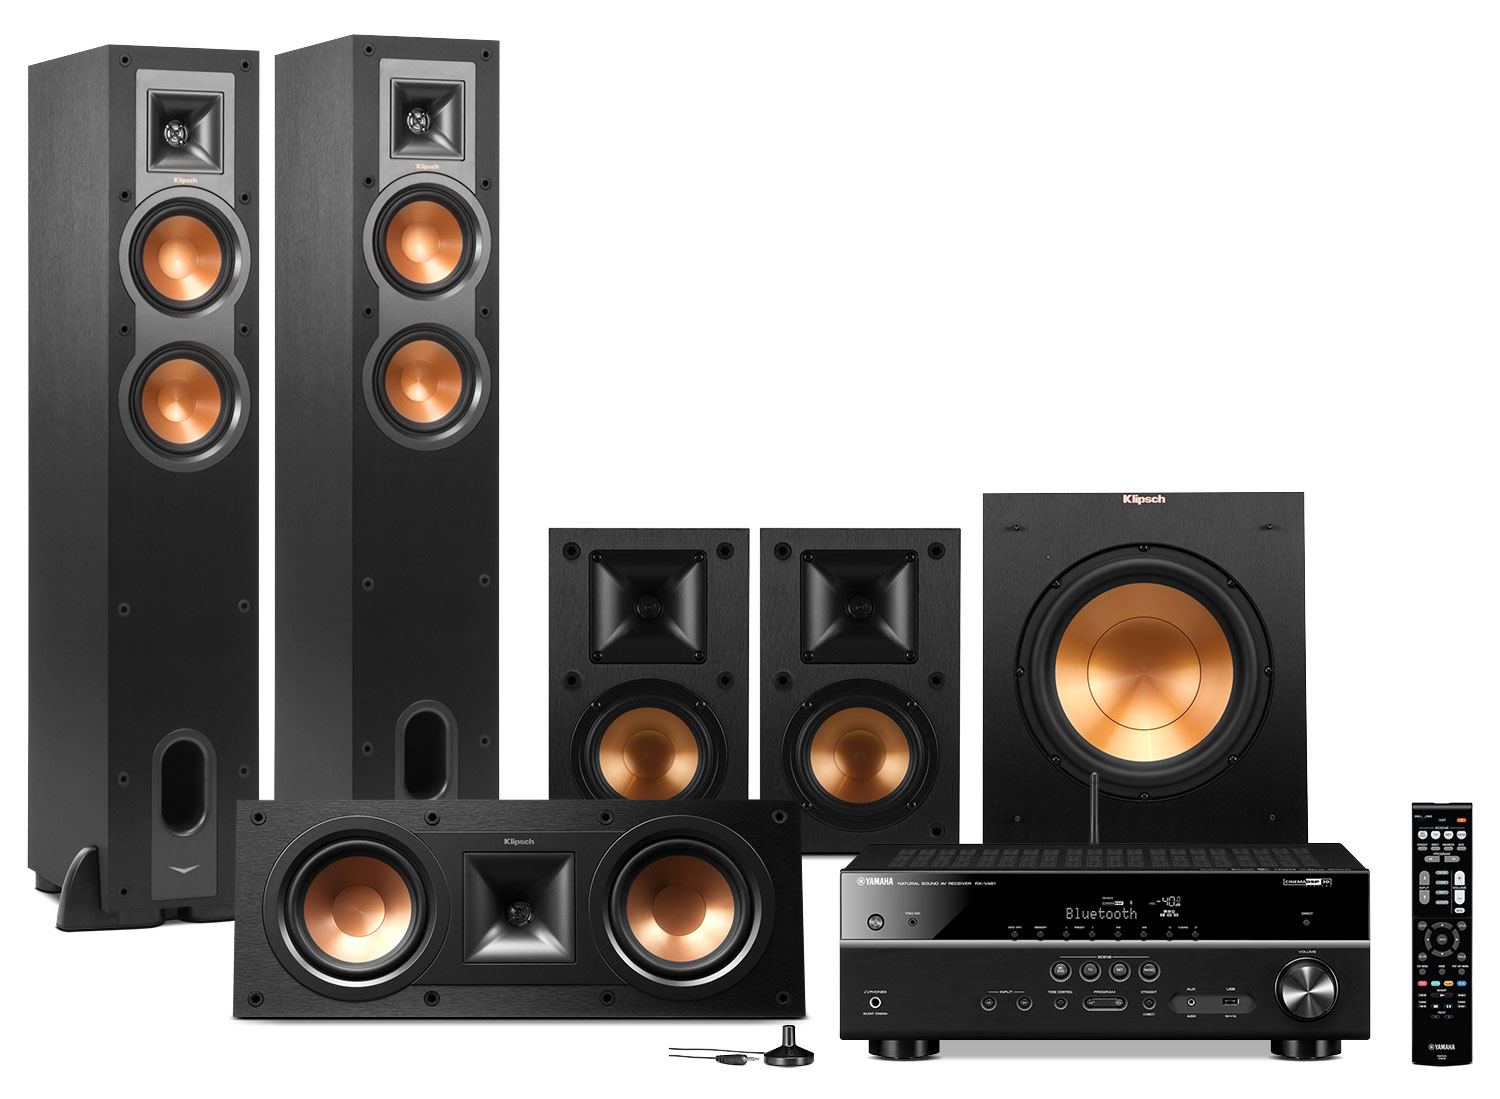 Sound Systems - Yamaha RX-V481 Home Theatre Package with Klipsch Speakers